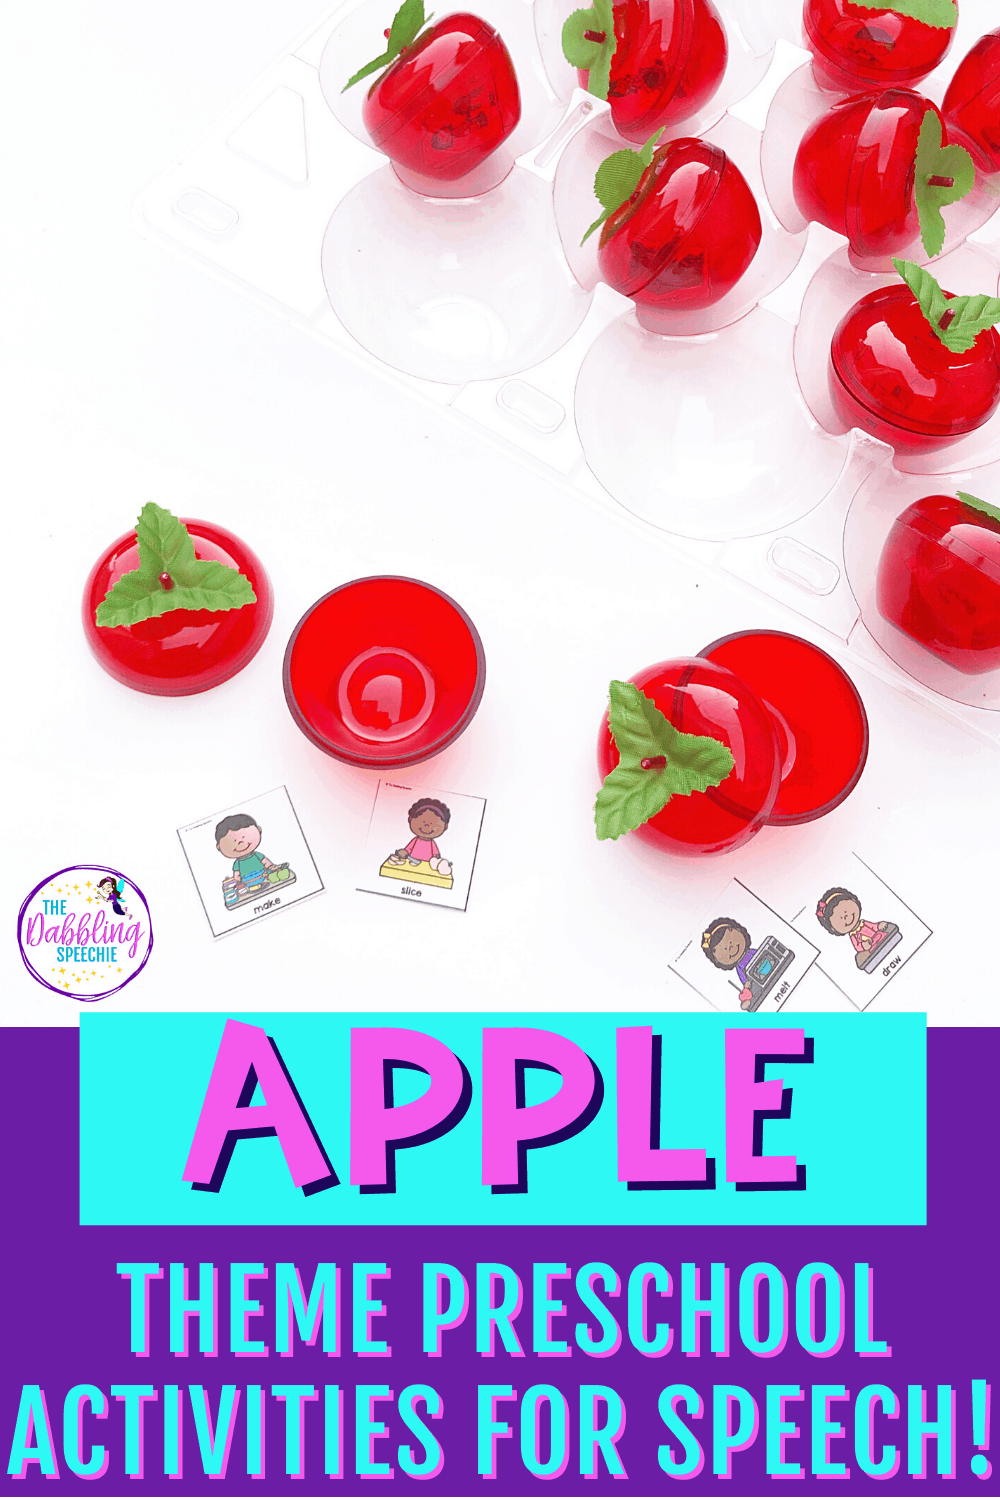 Apple theme preschool lesson plans that you can use for speech therapy